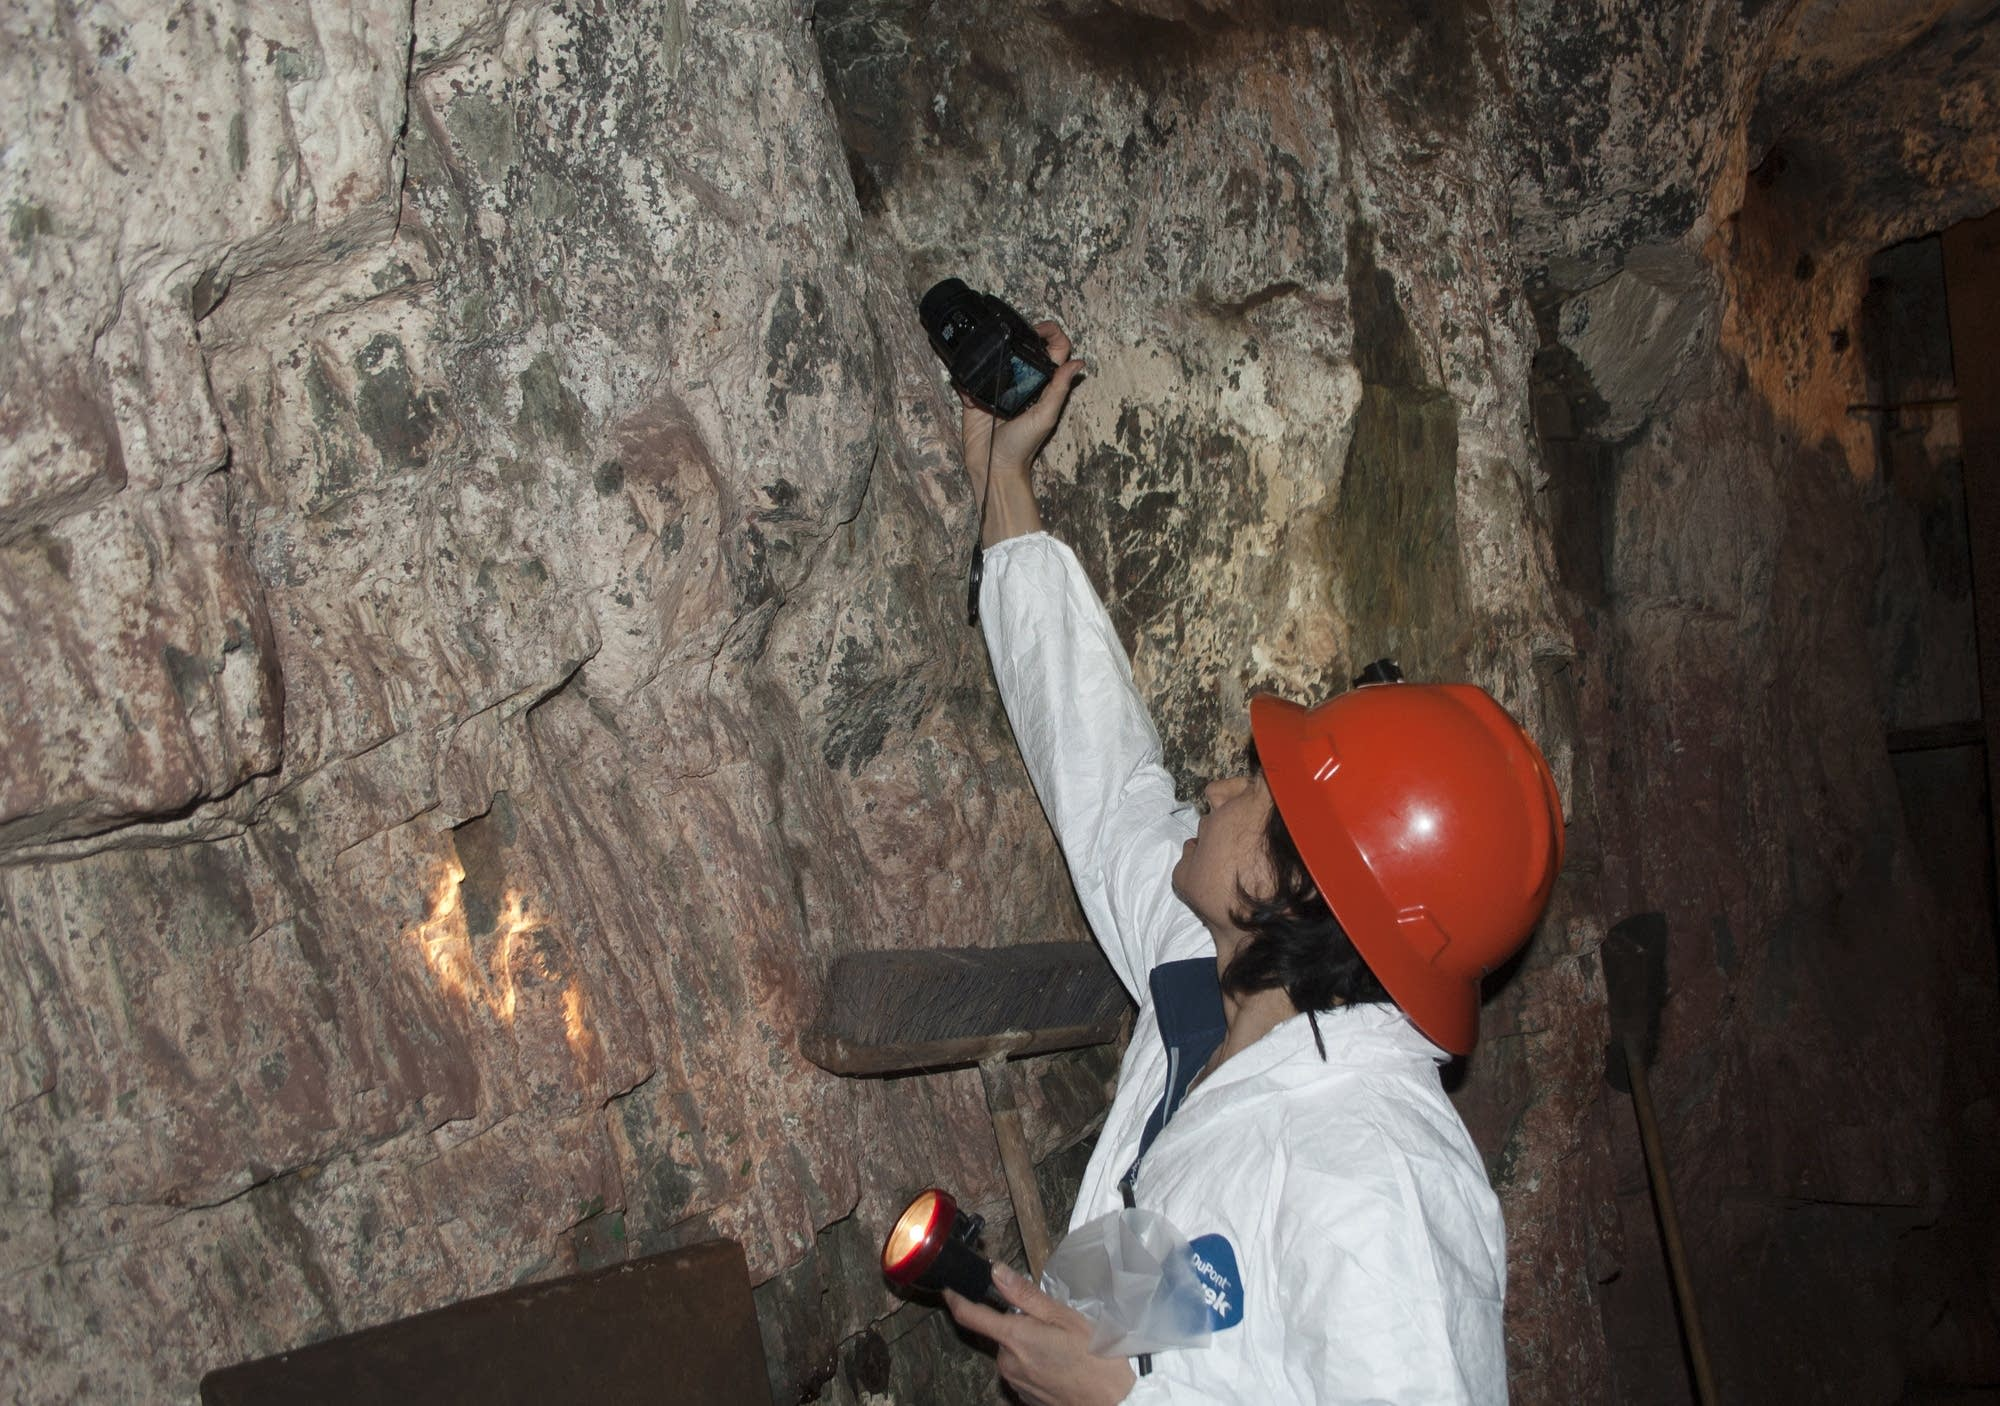 Christine Salomon photographs bats on a wall in the Soudan Mine.